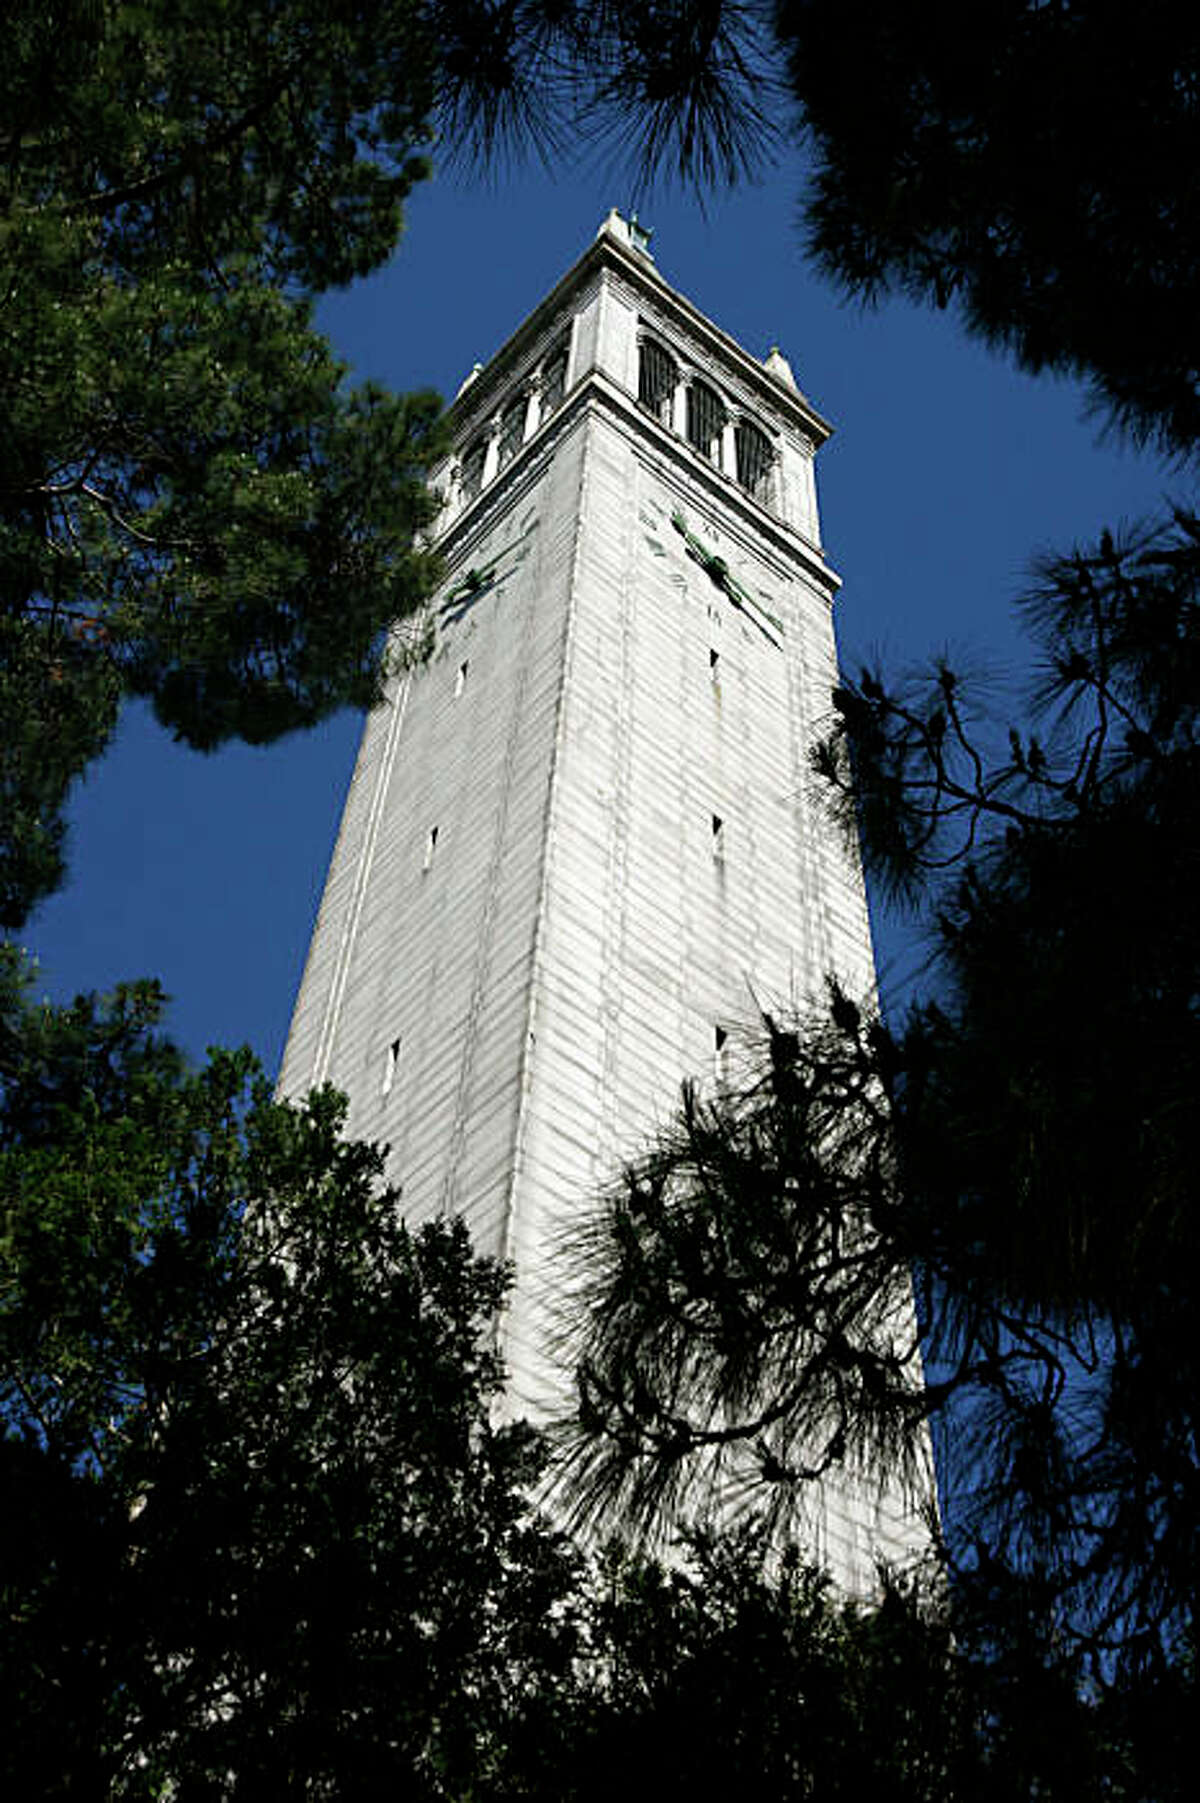 The 307-foot-high Campanile towers above every tree on the Cal campus in Berkeley, Calif., on Wednesday, June 4, 2008. The bell tower, offically known as Sather Tower, will host the Berkeley Carillon Festival from June 10 thru June 13 and is attracting carillonneurs from all over the world. Photo by Paul Chinn / The Chronicle